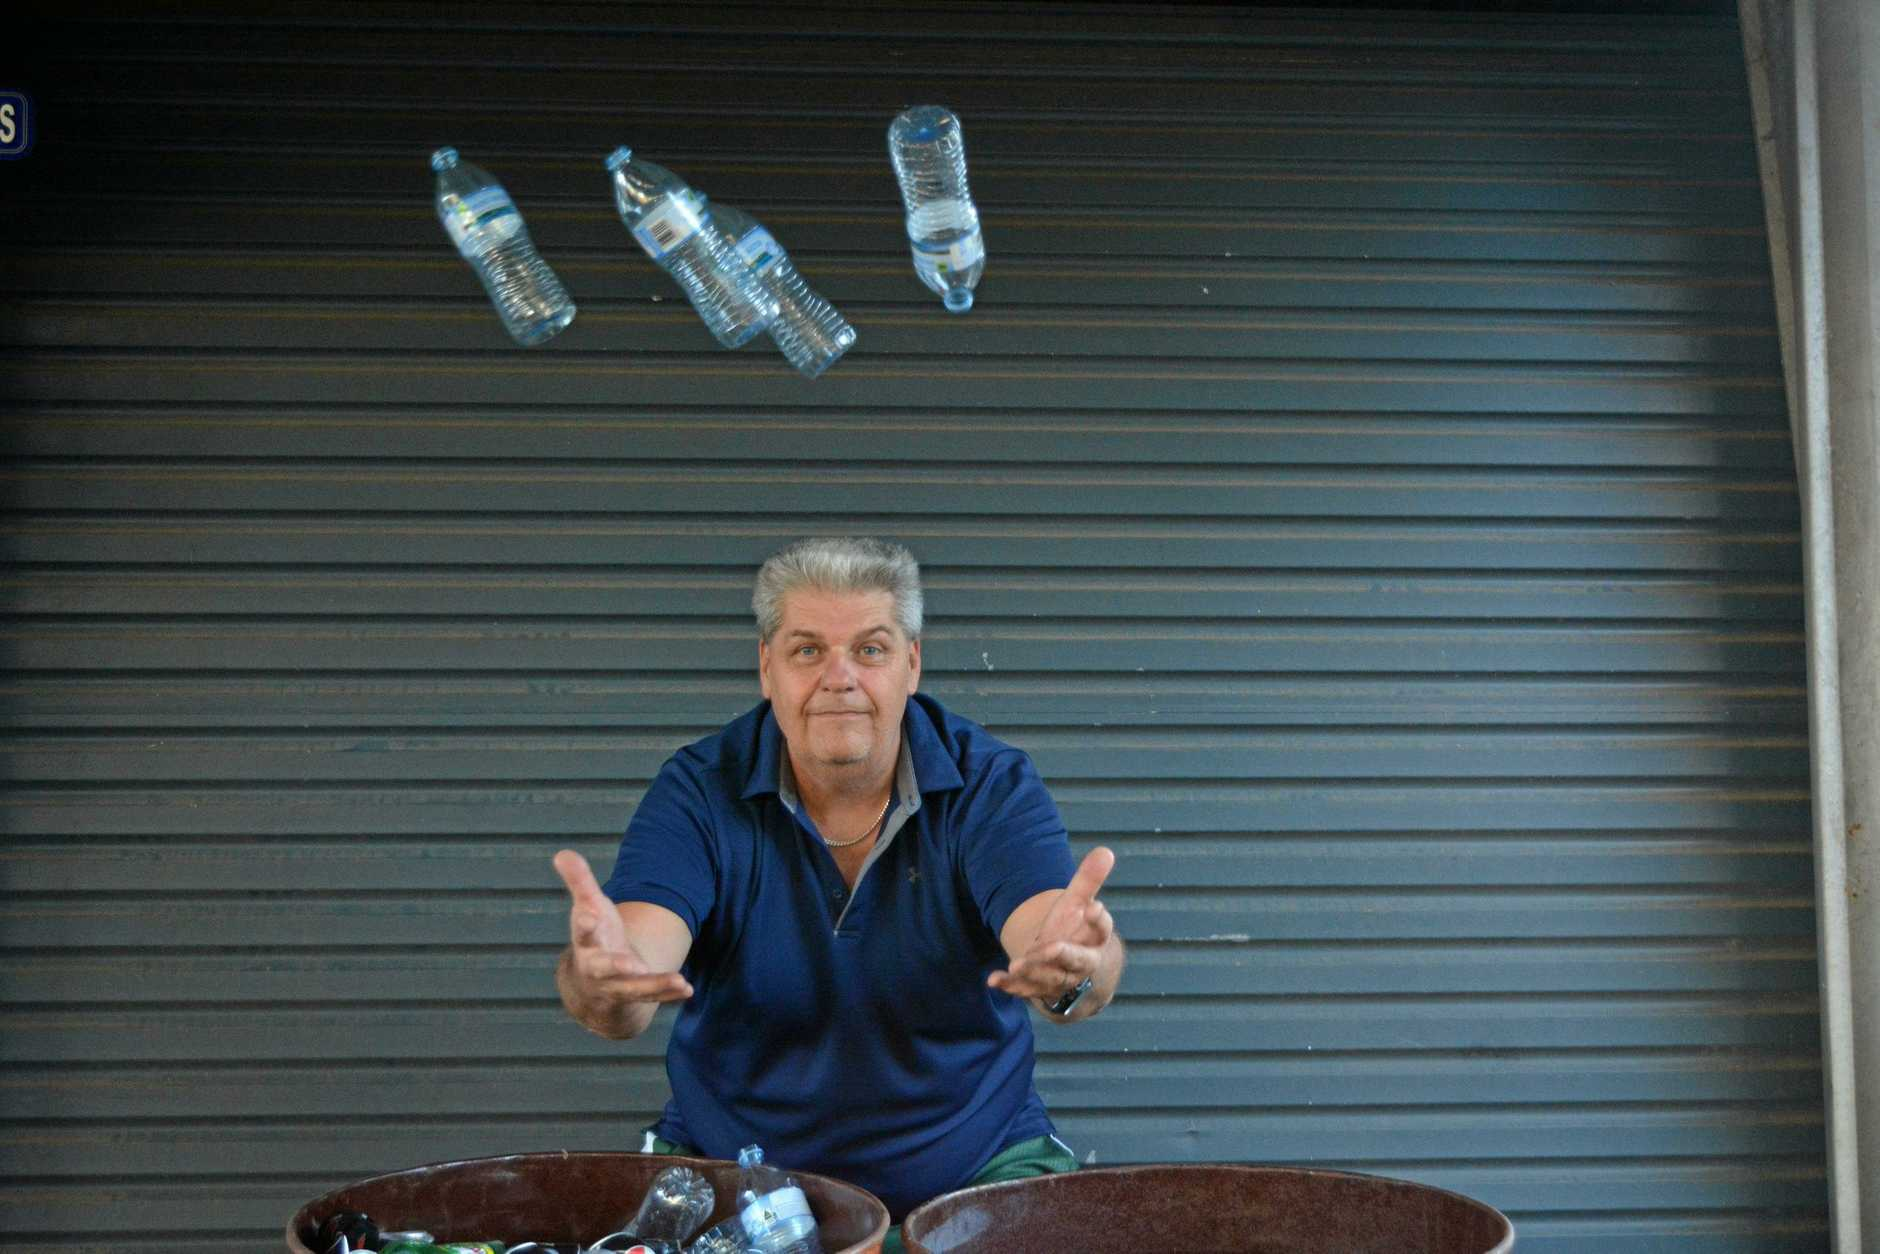 Peter Farrer collects bottles in his two 44 gallon drums and takes them down to the Laidley collection site every few months for a refund. He keeps a bin nearby so he can easily dispose of the lids.